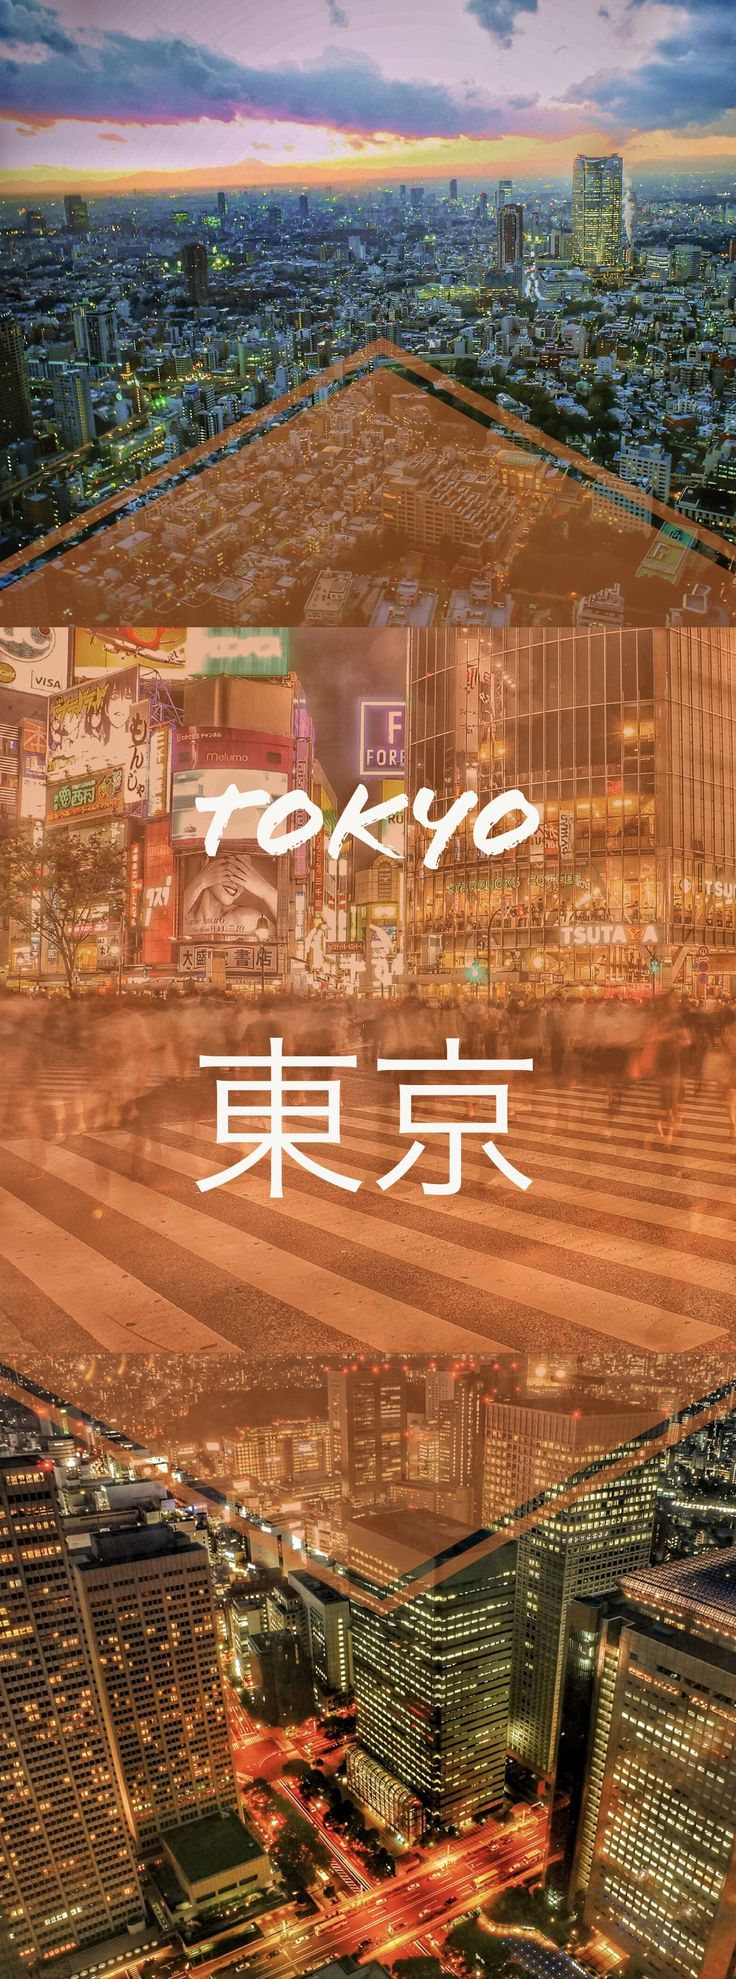 Tokyo, Japan Travel Itinerary. See the best of Tokyo with this expert guide on the best things to do and see.